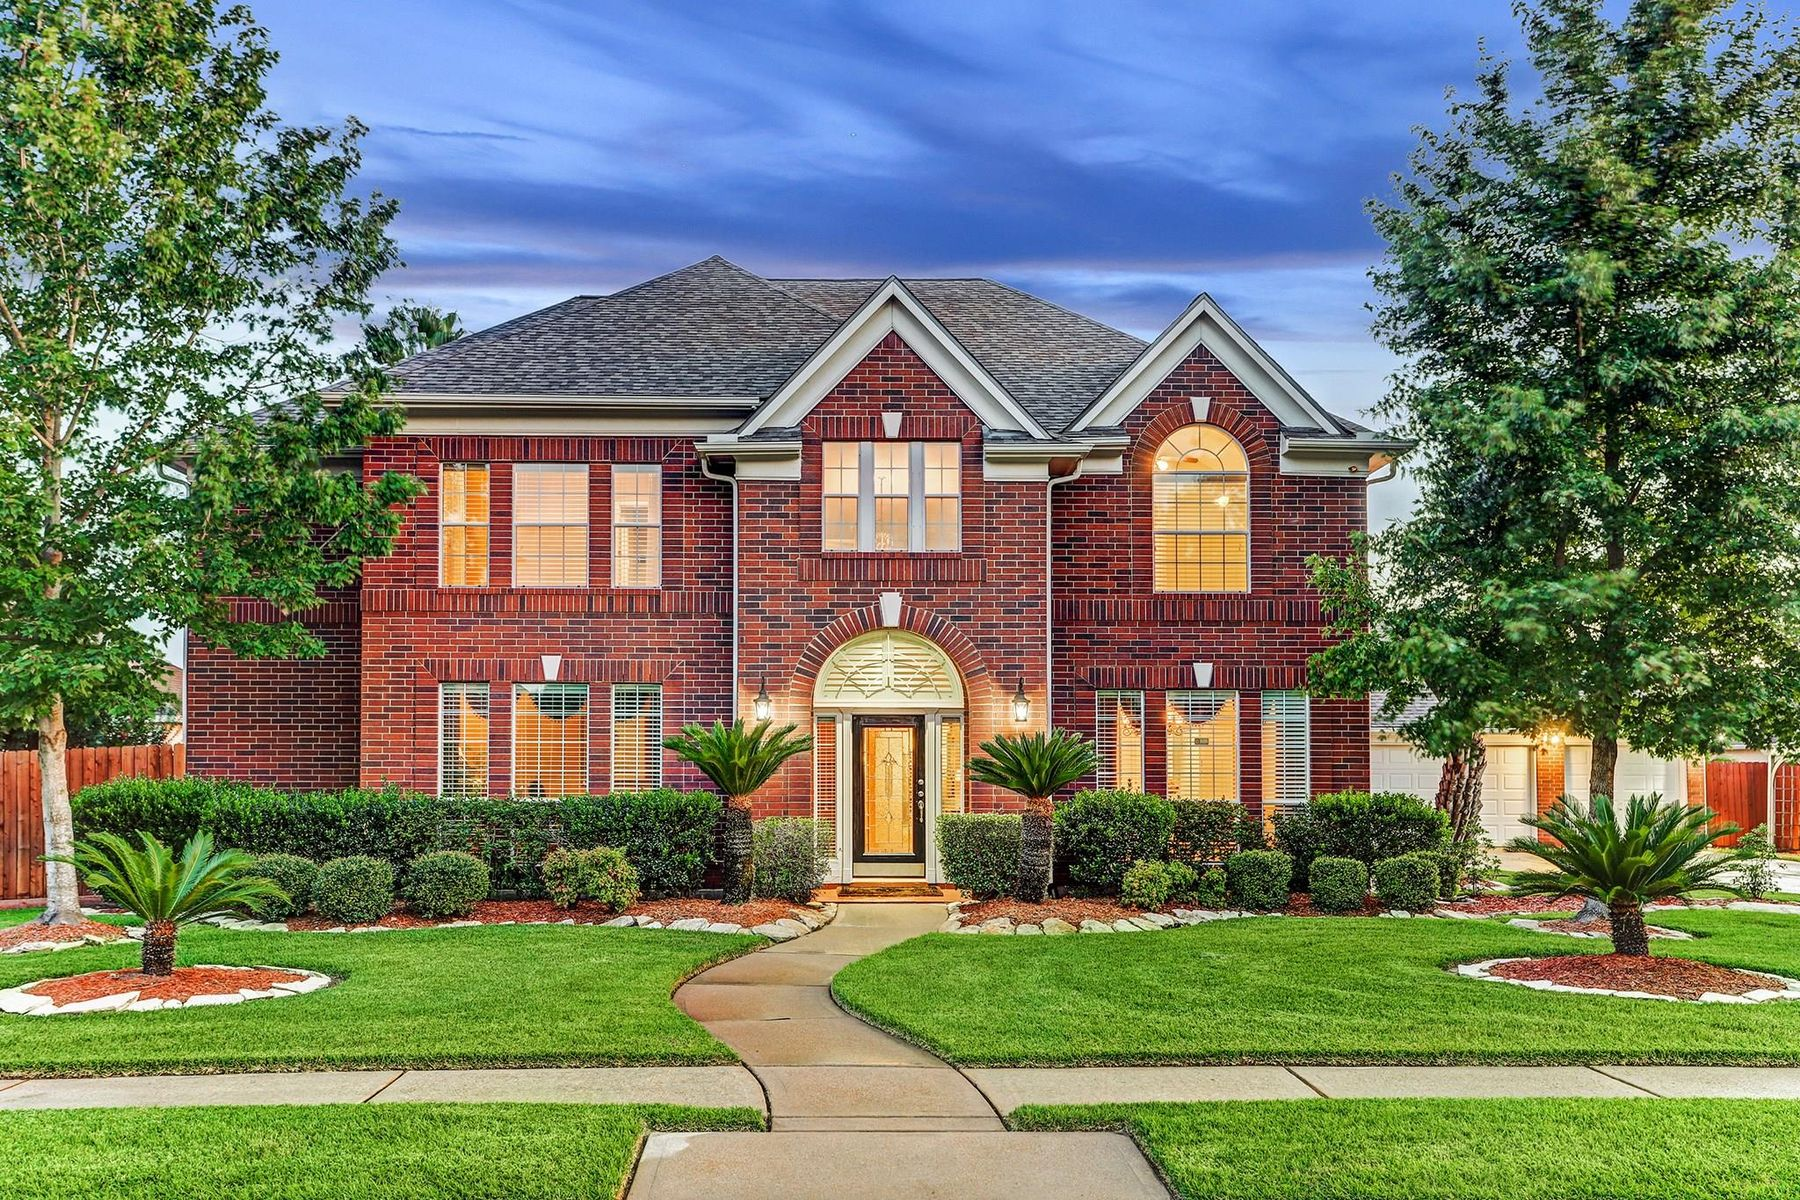 Single Family Homes for Sale at 15807 Township Glen Cypress, Texas 77433 United States